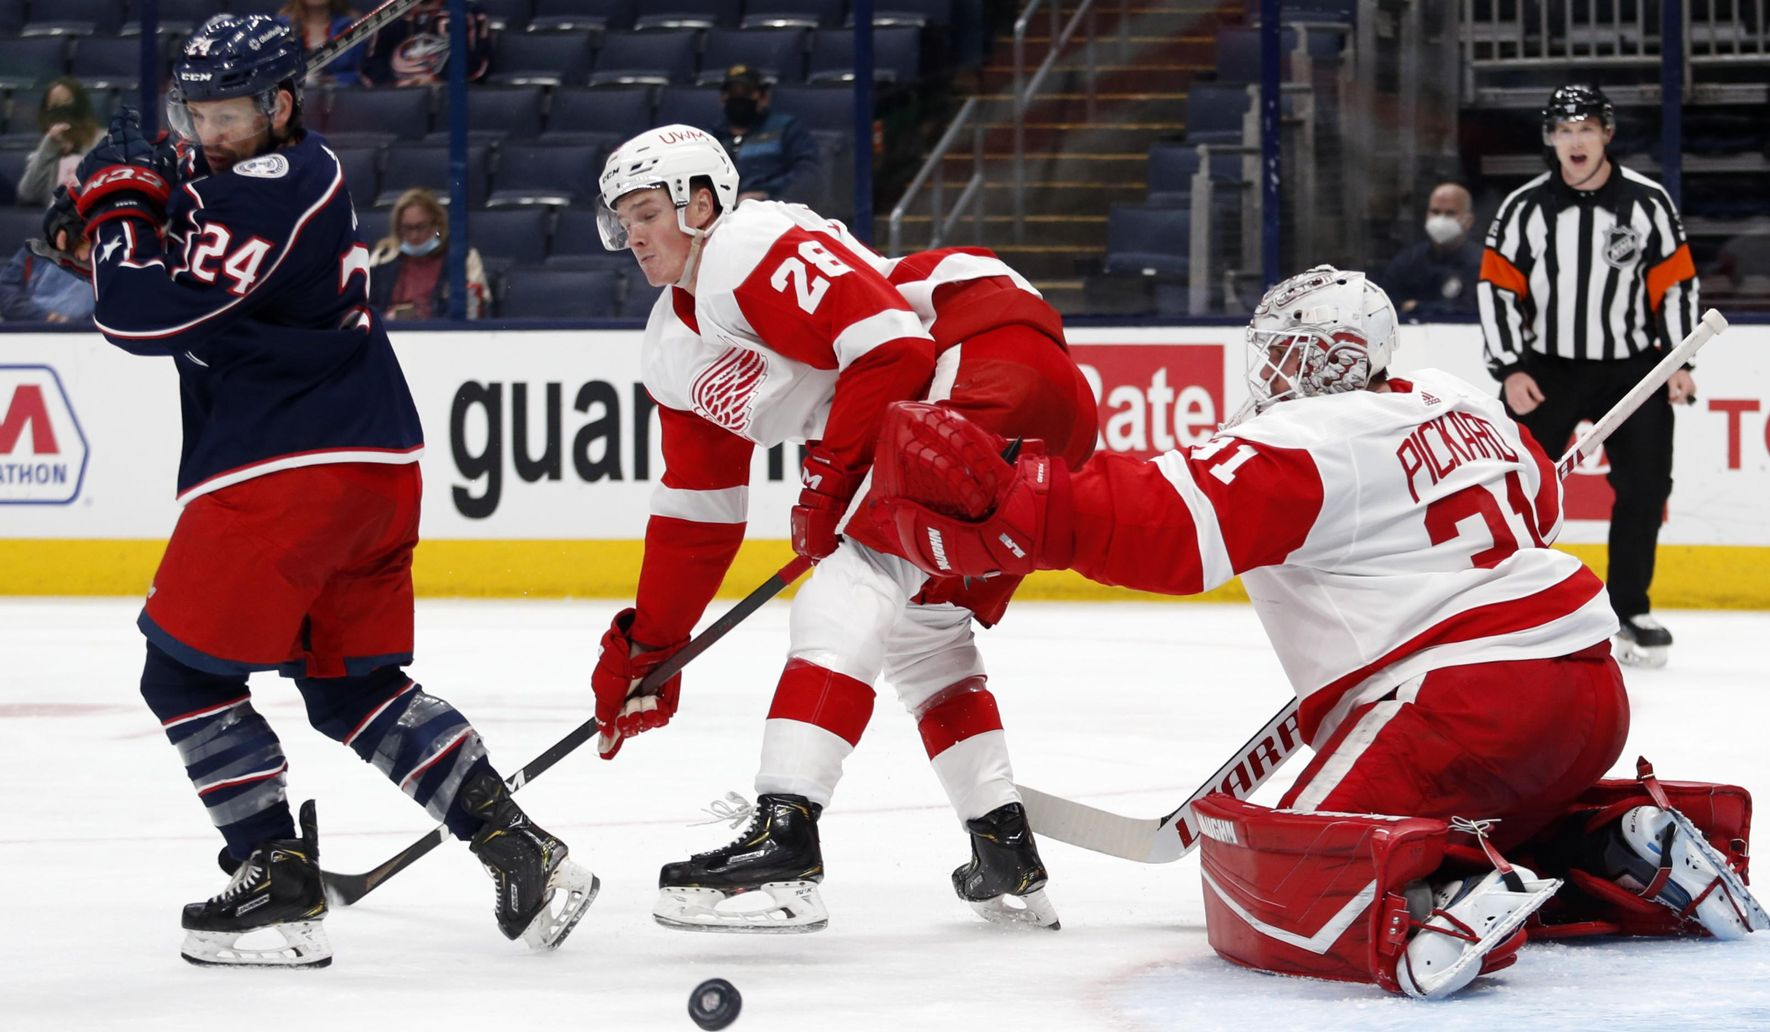 Red_wings_blue_jackets_hockey_82898_c0-147-3208-2017_s1770x1032